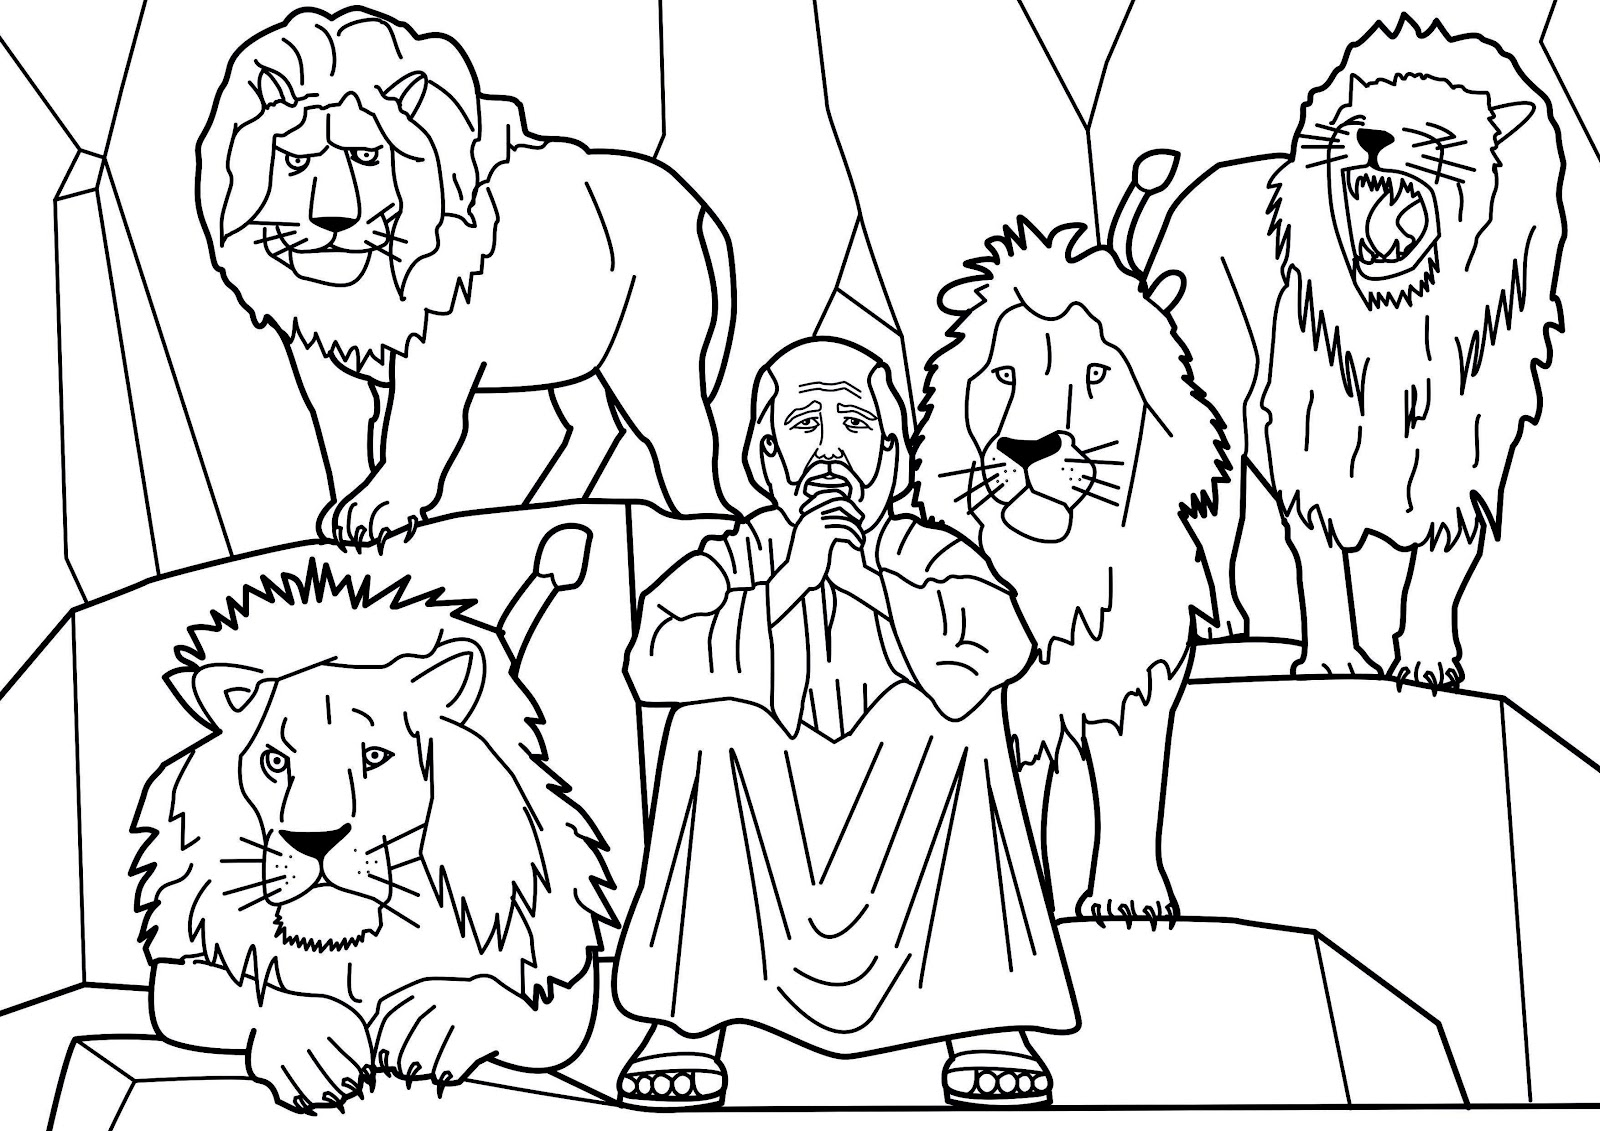 coloring pages of bible stories - photo#35